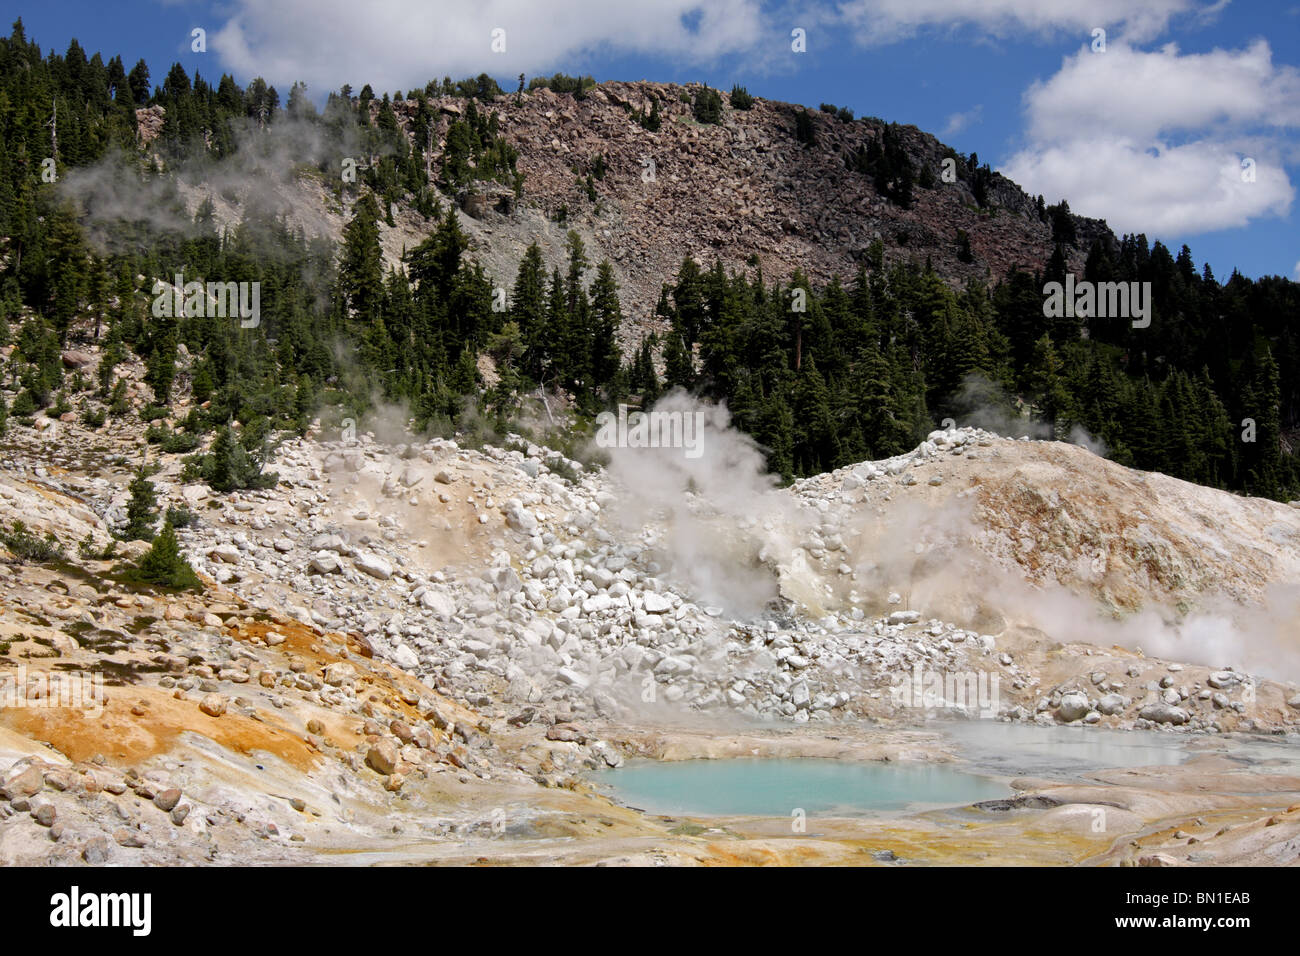 Steam rises from fumaroles alongside the boiling pools in the Bumpass Hell Geothermal Area of Lassen Volcanic National - Stock Image